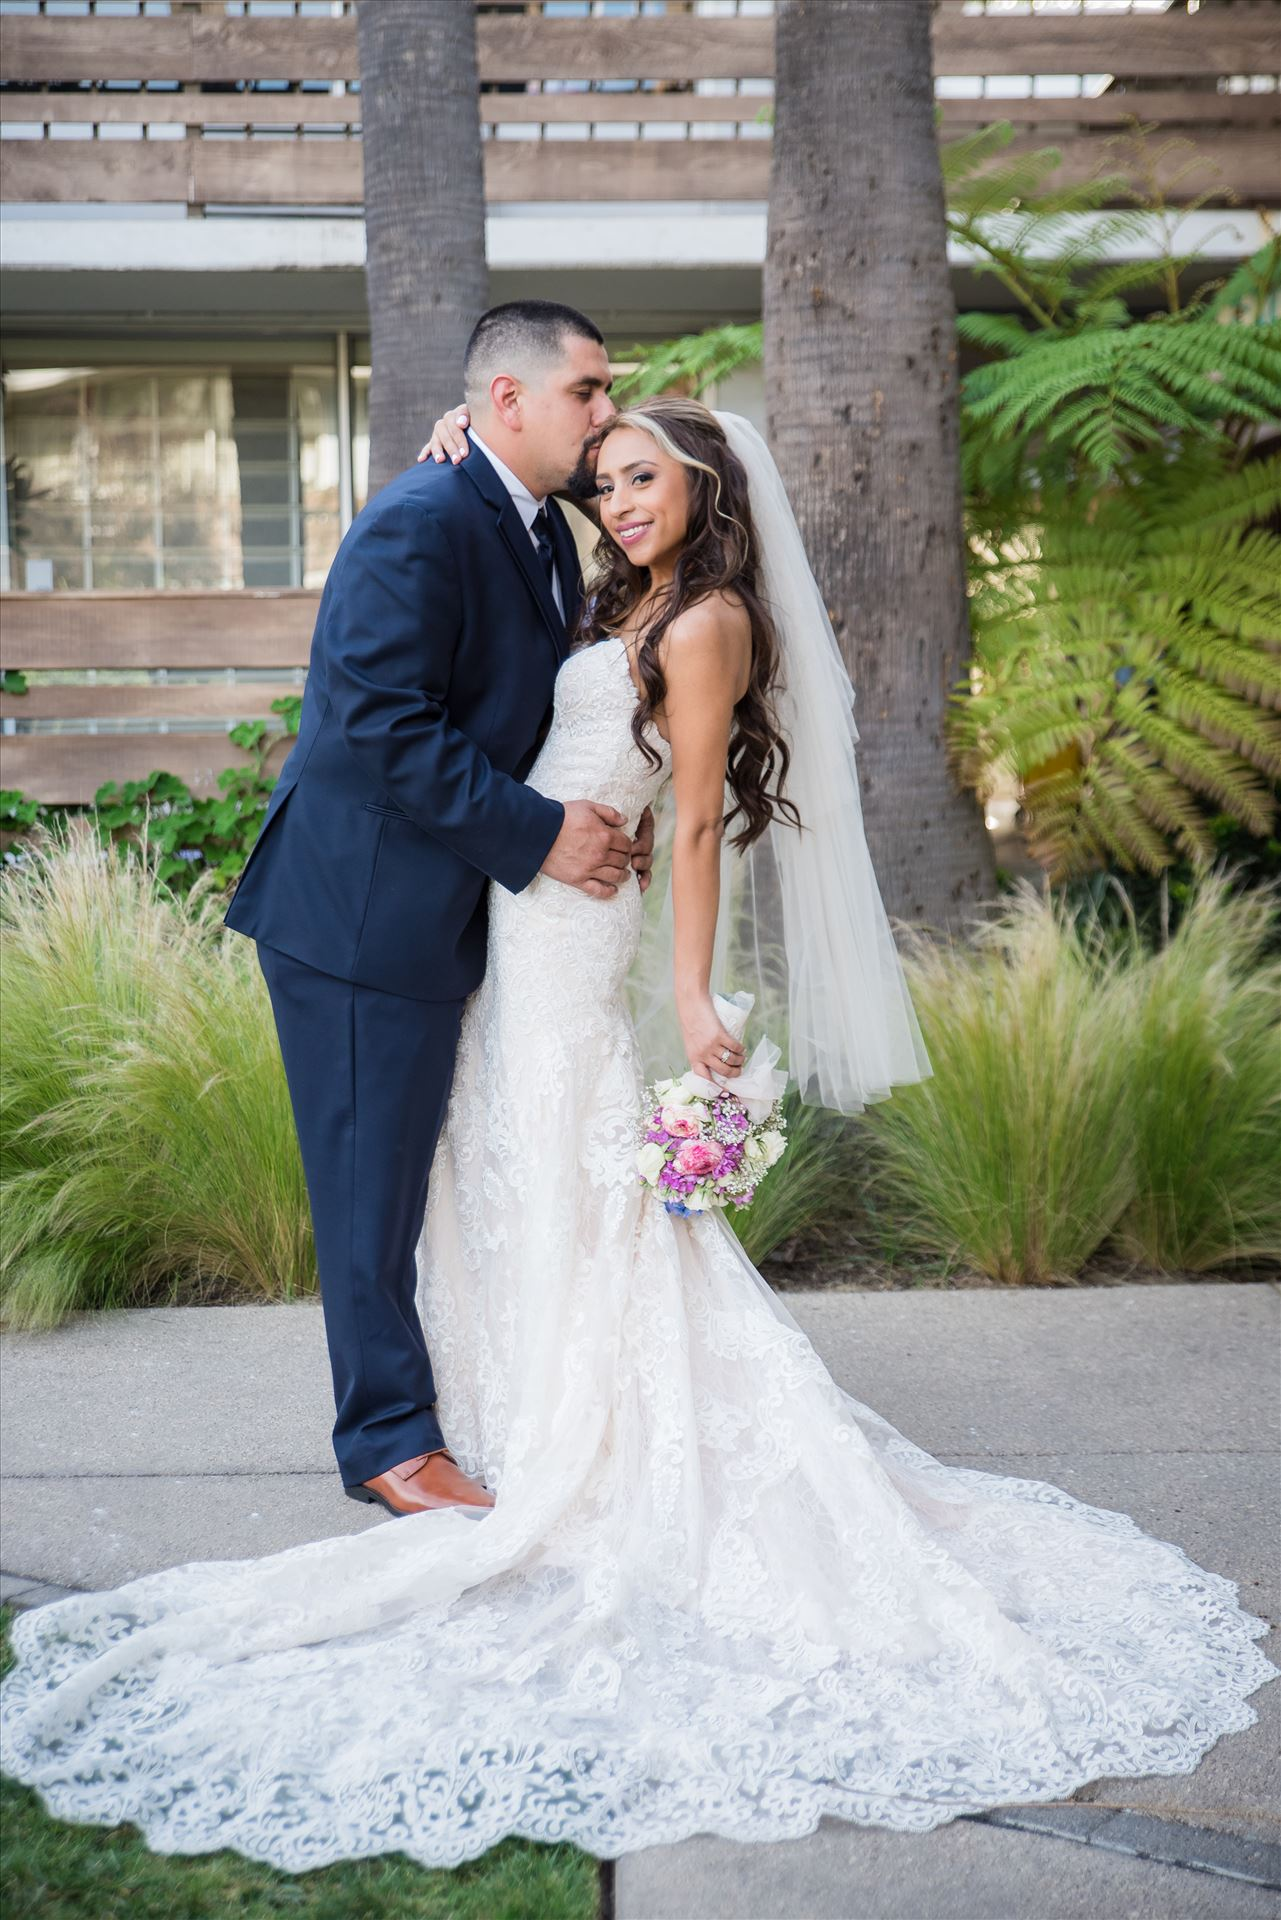 Ana and Juan 41 - Wedding photography at the Kimpton Goodland Hotel in Santa Barbara California by Mirror's Edge Photography.  Classic Bride and Groom by Sarah Williams